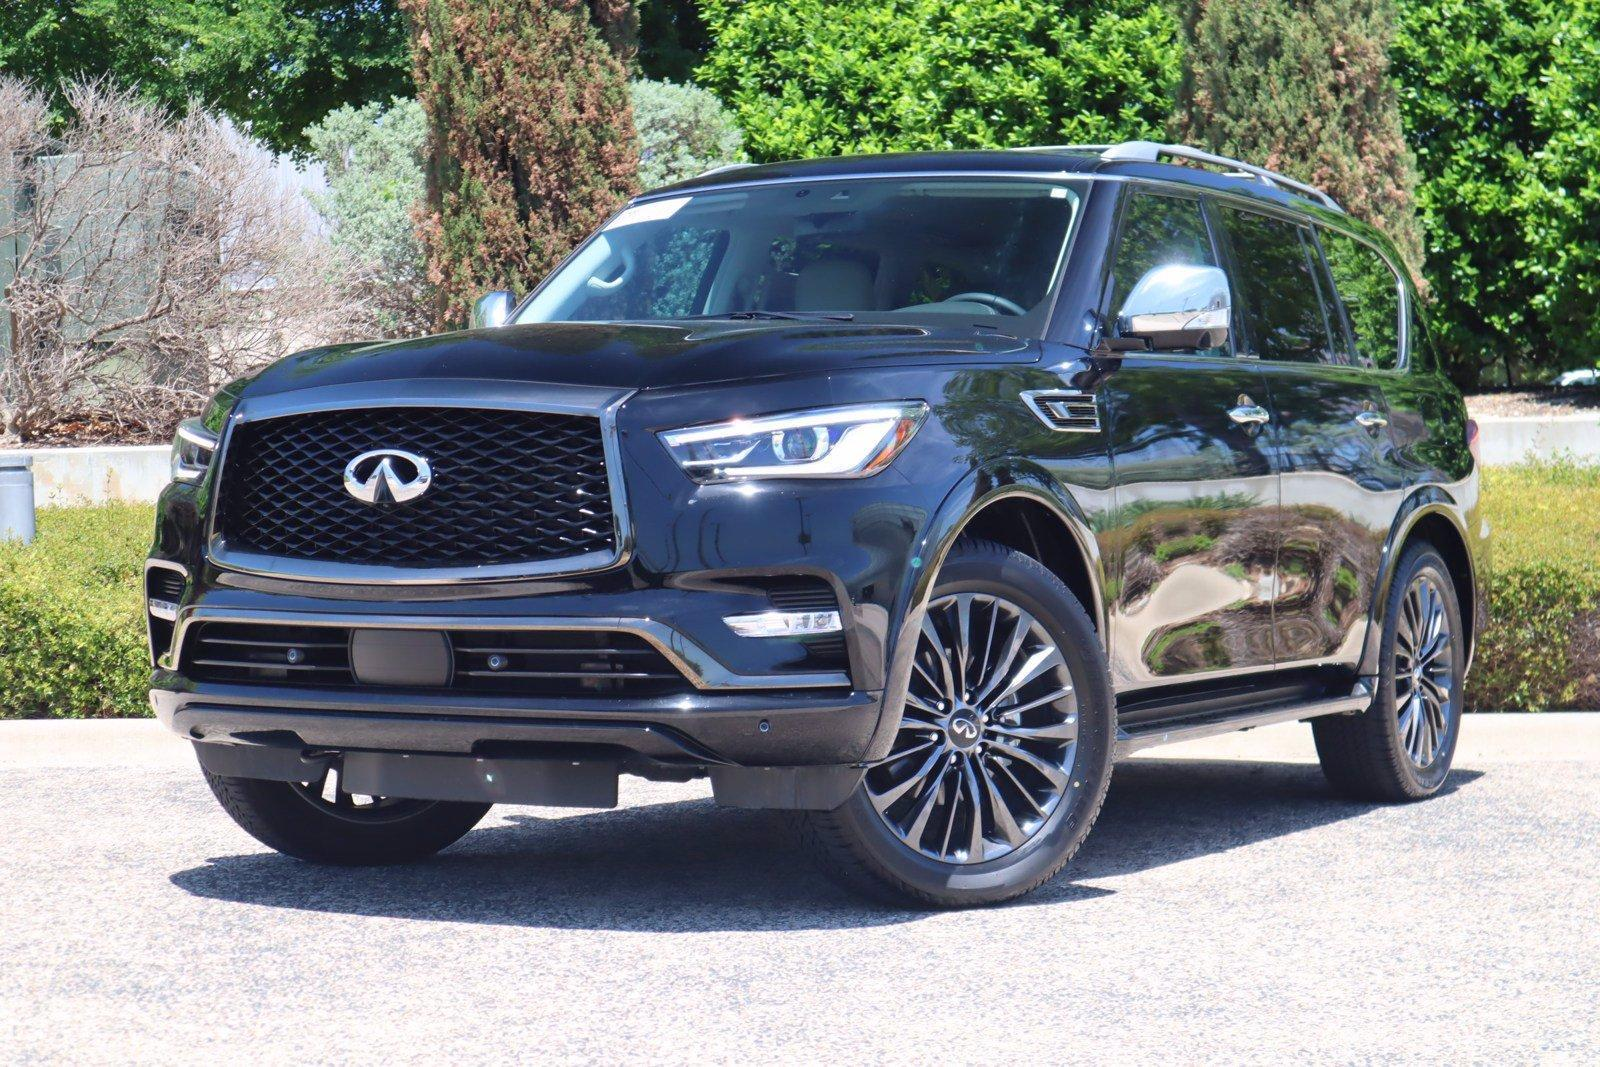 2021 INFINITI QX80 Vehicle Photo in Fort Worth, TX 76132